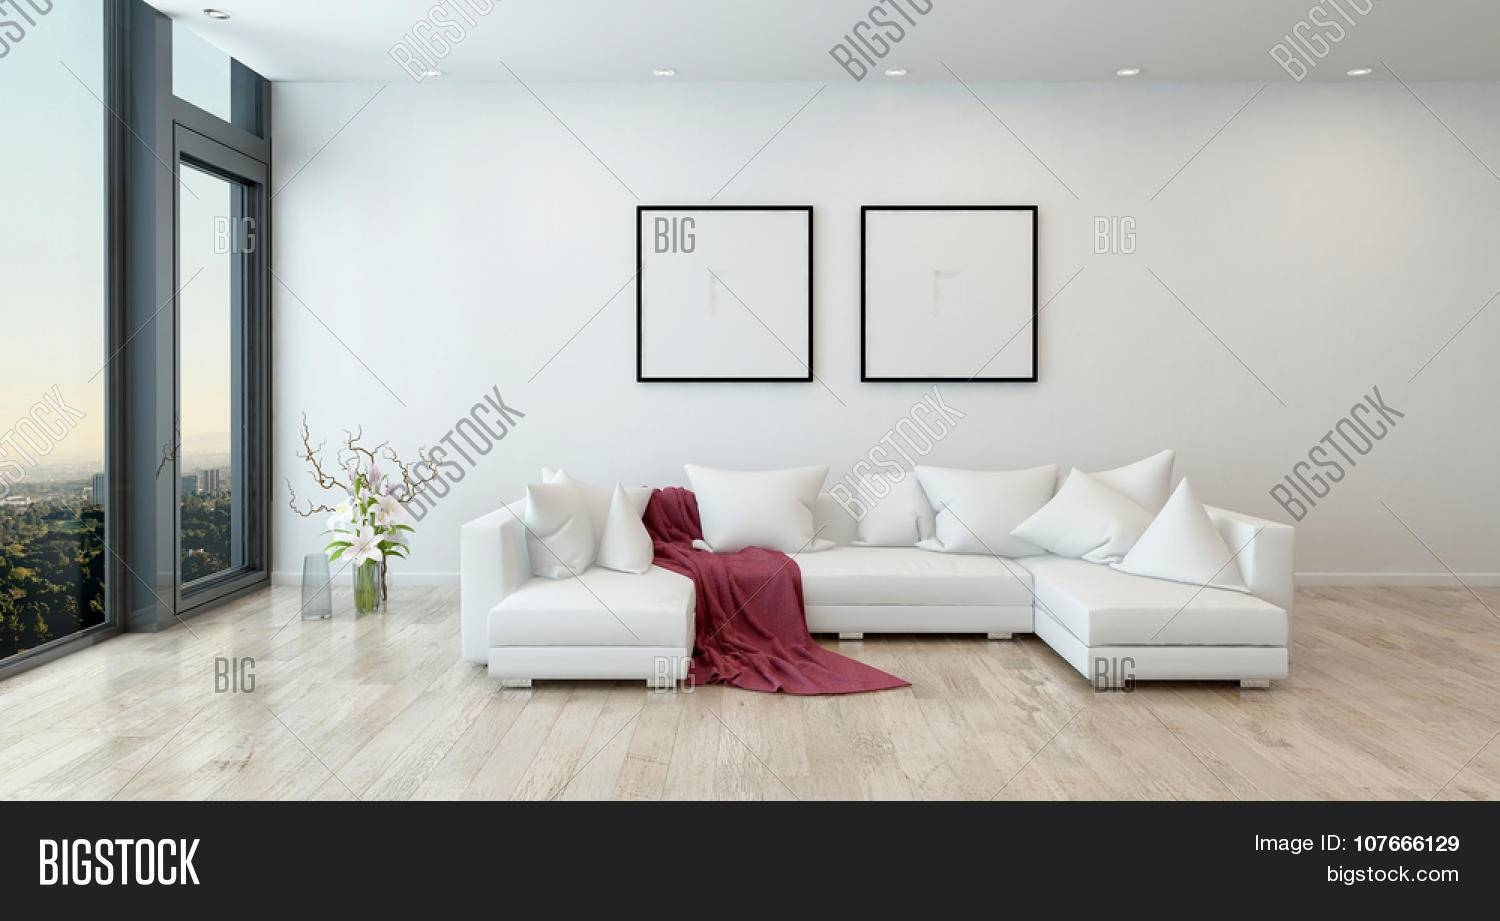 Architectural Interior Of Open Concept Apartment In High Rise throughout Red Sofa Throws (Image 2 of 25)